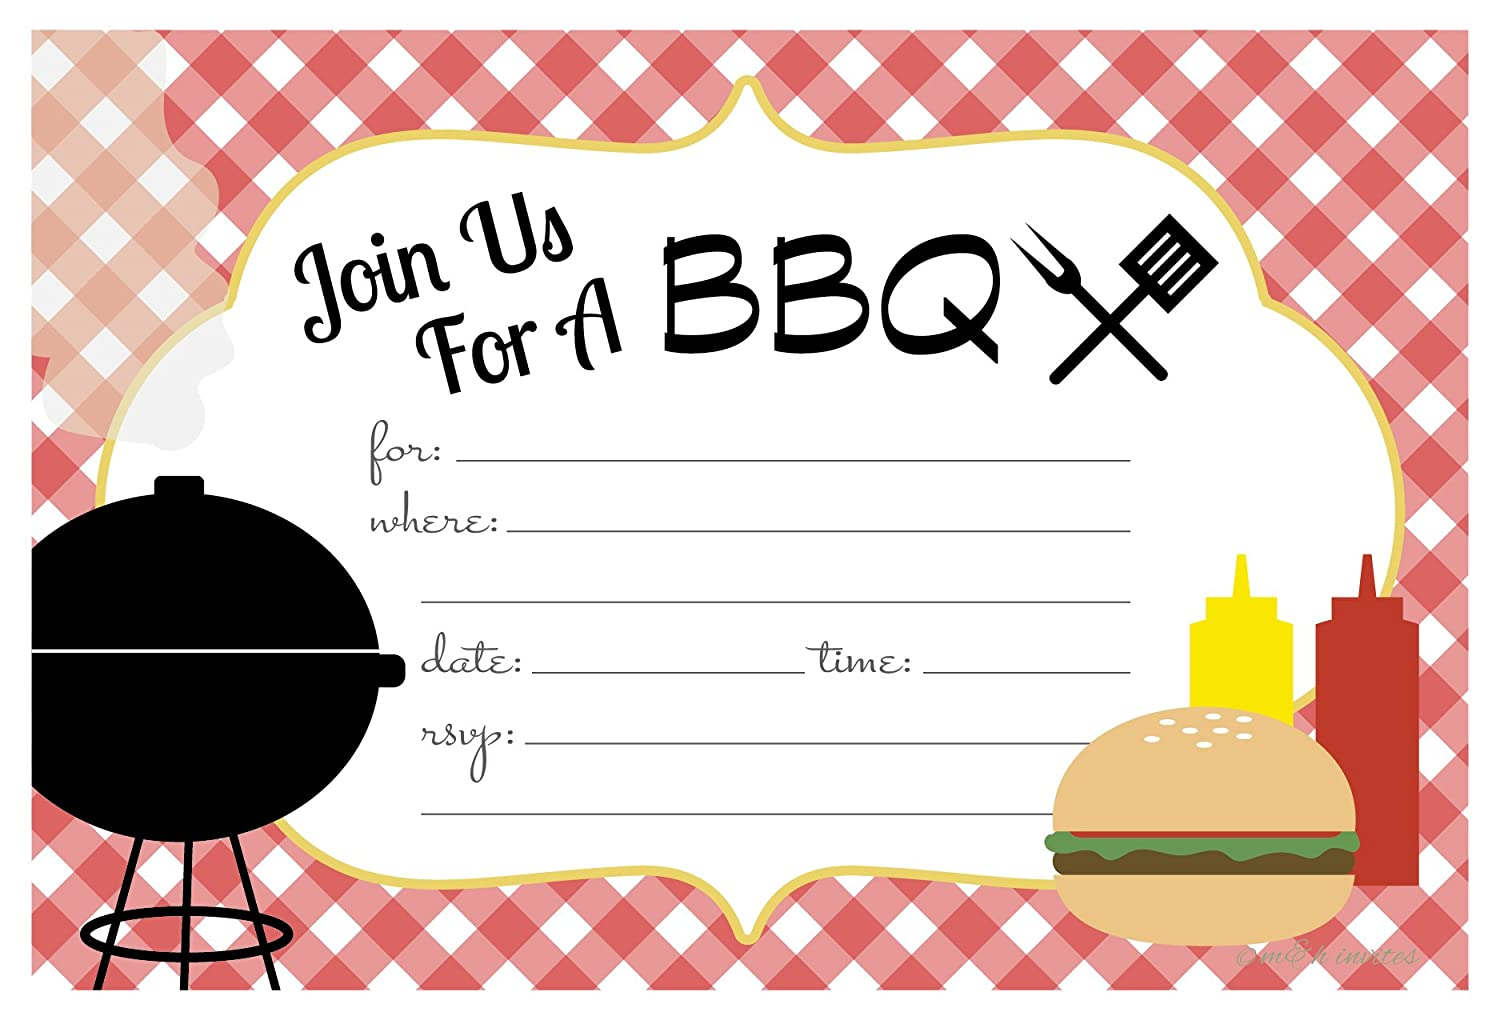 Amazon.com: Summer BBQ Cookout Invitations - Fill In Style (20 Count ...